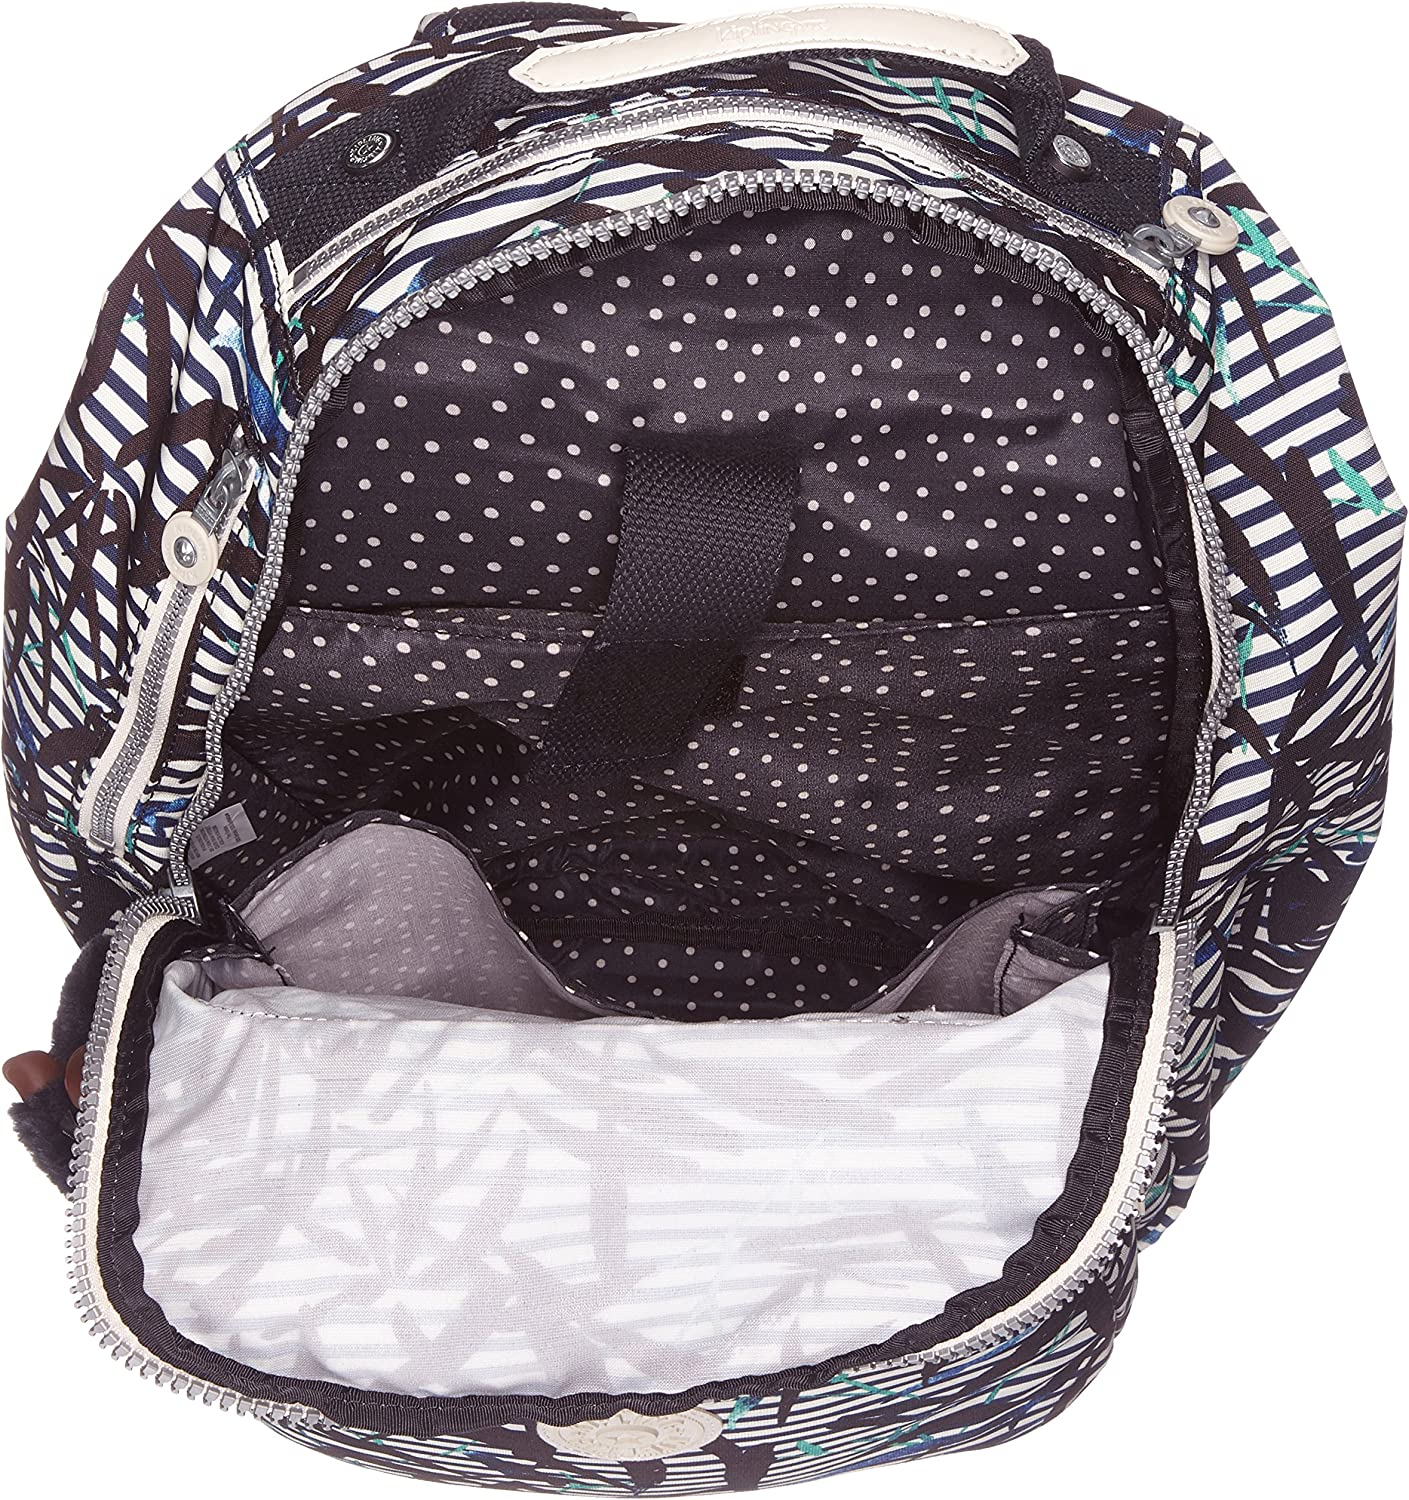 Kipling Clas Seoul Zaino, 25 liters, Grigio (Cotton Grey) Multicolore (Bamboo Stripes) JTmD7